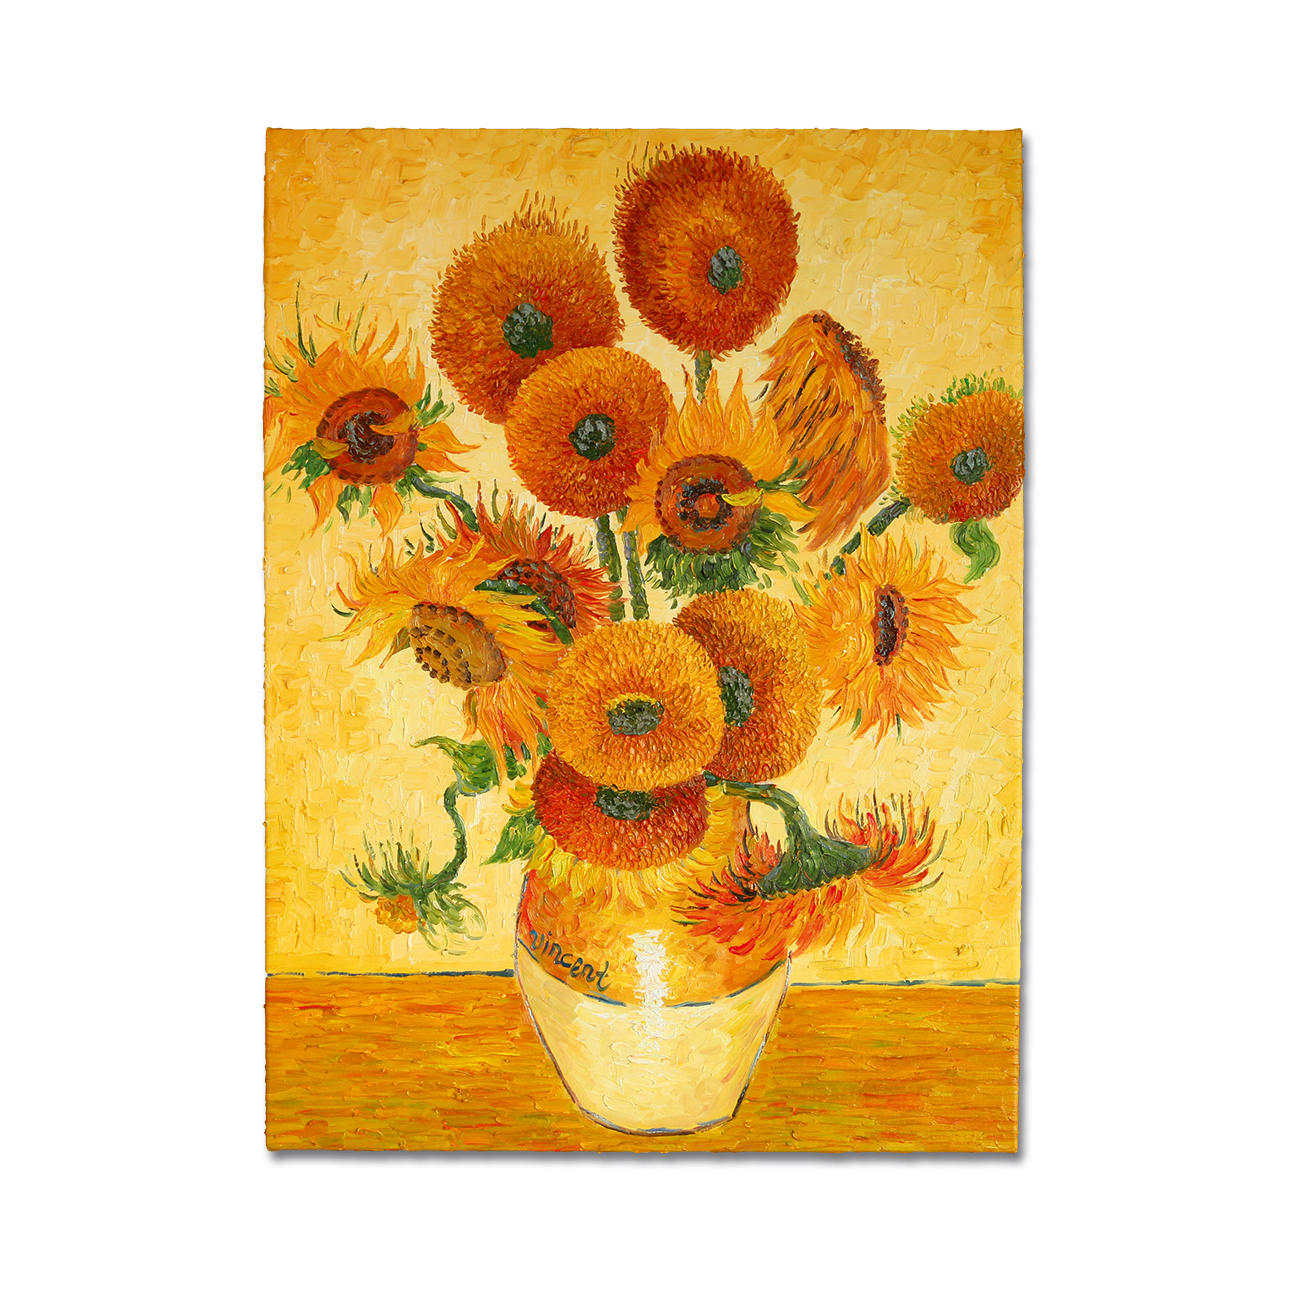 zhao xiaoyong malt vincent van gogh 15 sonnenblumen in einer vase. Black Bedroom Furniture Sets. Home Design Ideas